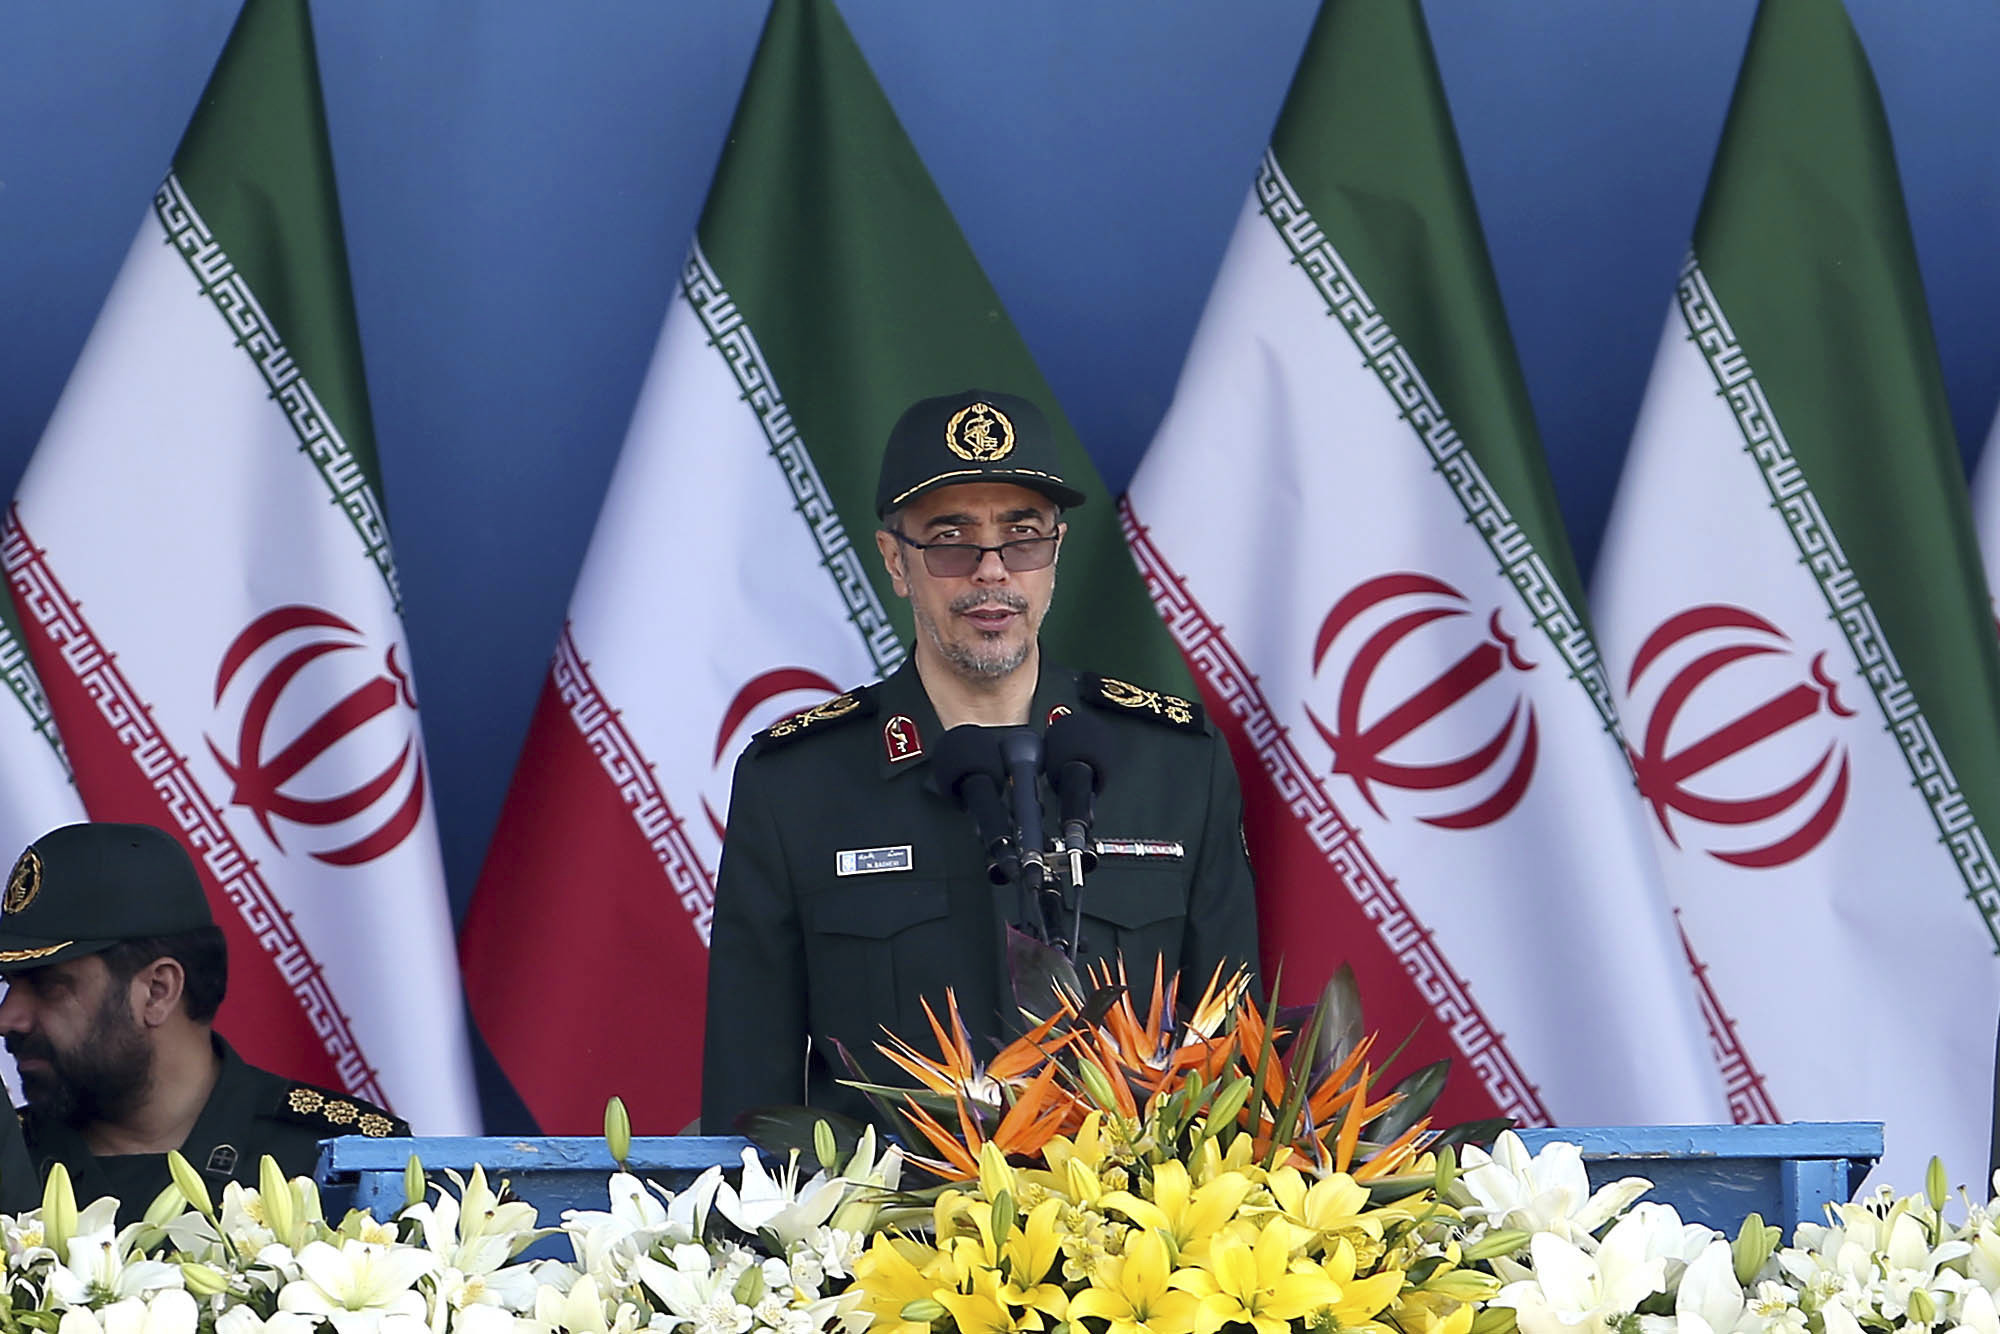 Chief of Staff of Iran's Armed Forces General Mohammad Hossein Bagheri delivers a speech during a military parade marking the 36th anniversary of Iraq's 1980 invasion of Iran in front of the shrine of late revolutionary founder Ayatollah Khome